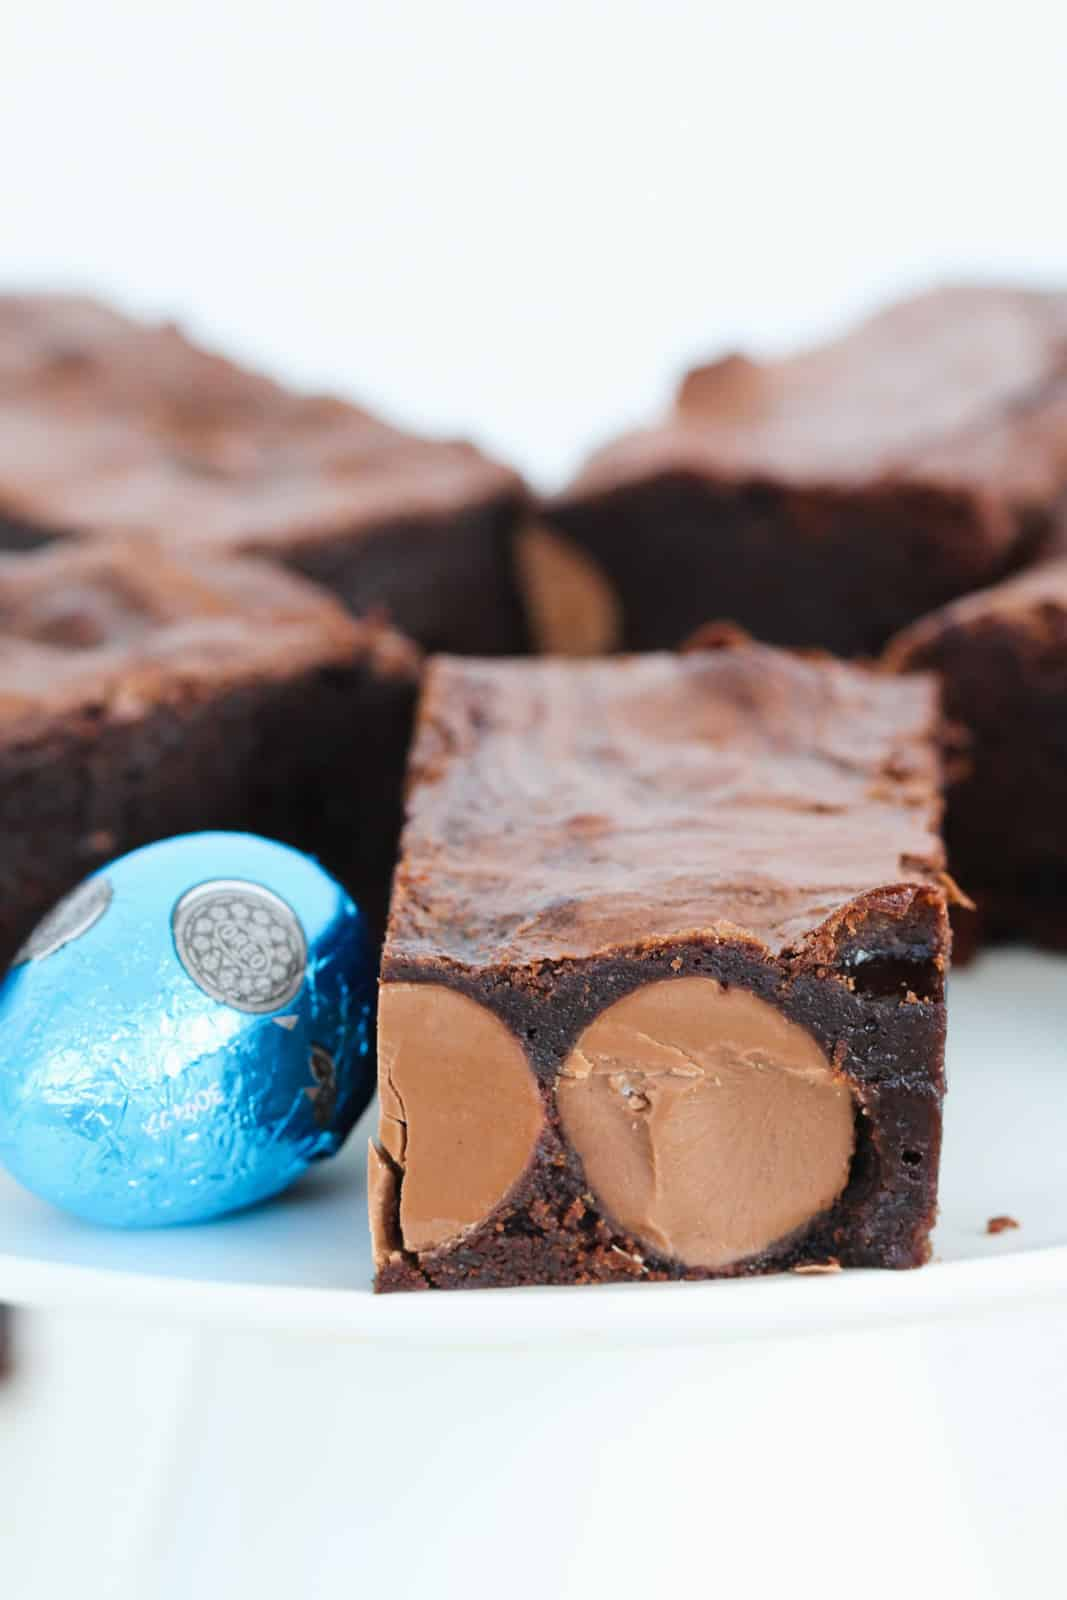 Squares of moist brownie filled with round mini solid chocolate Easter eggs.